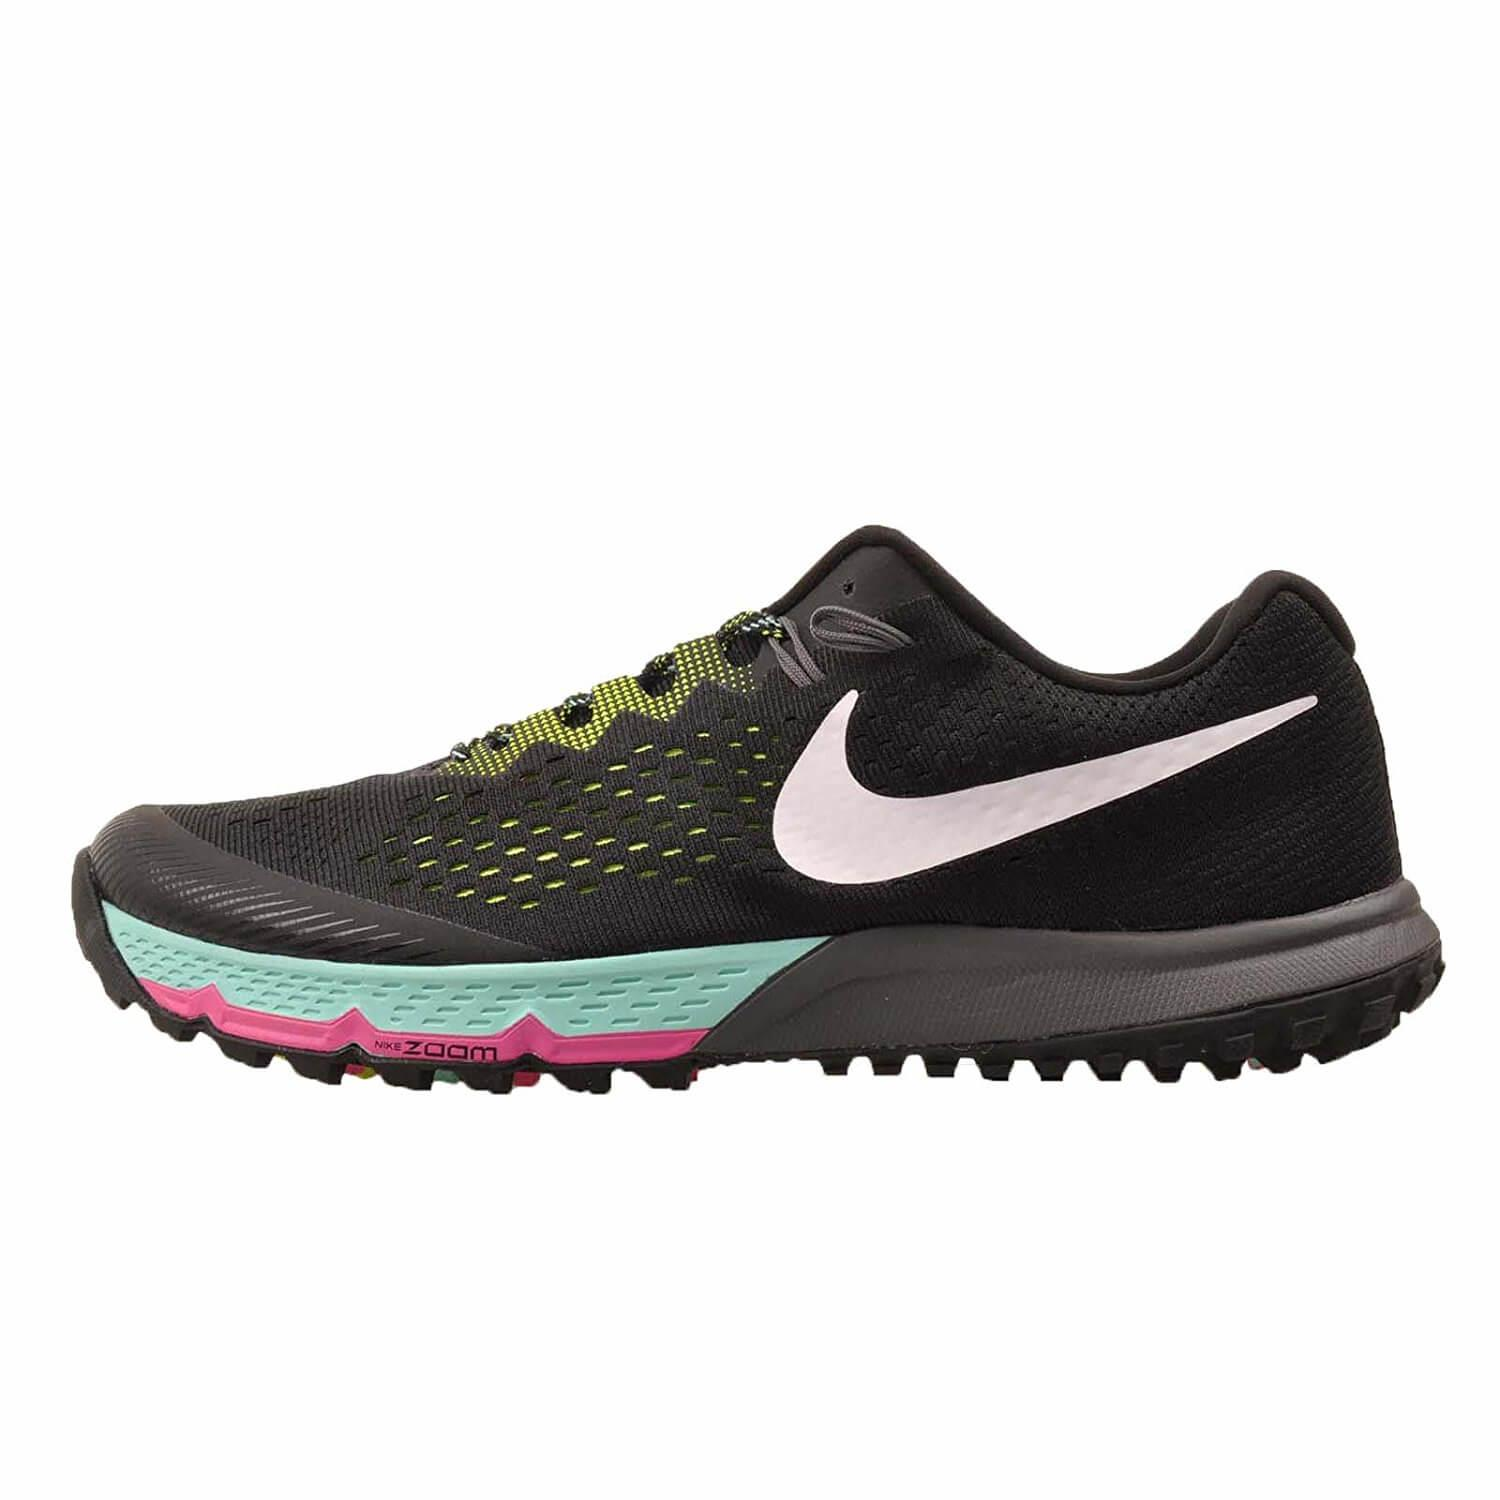 72a27d5e819 Nike Air Zoom Terra Kiger 4ed for Quality - in May 2019